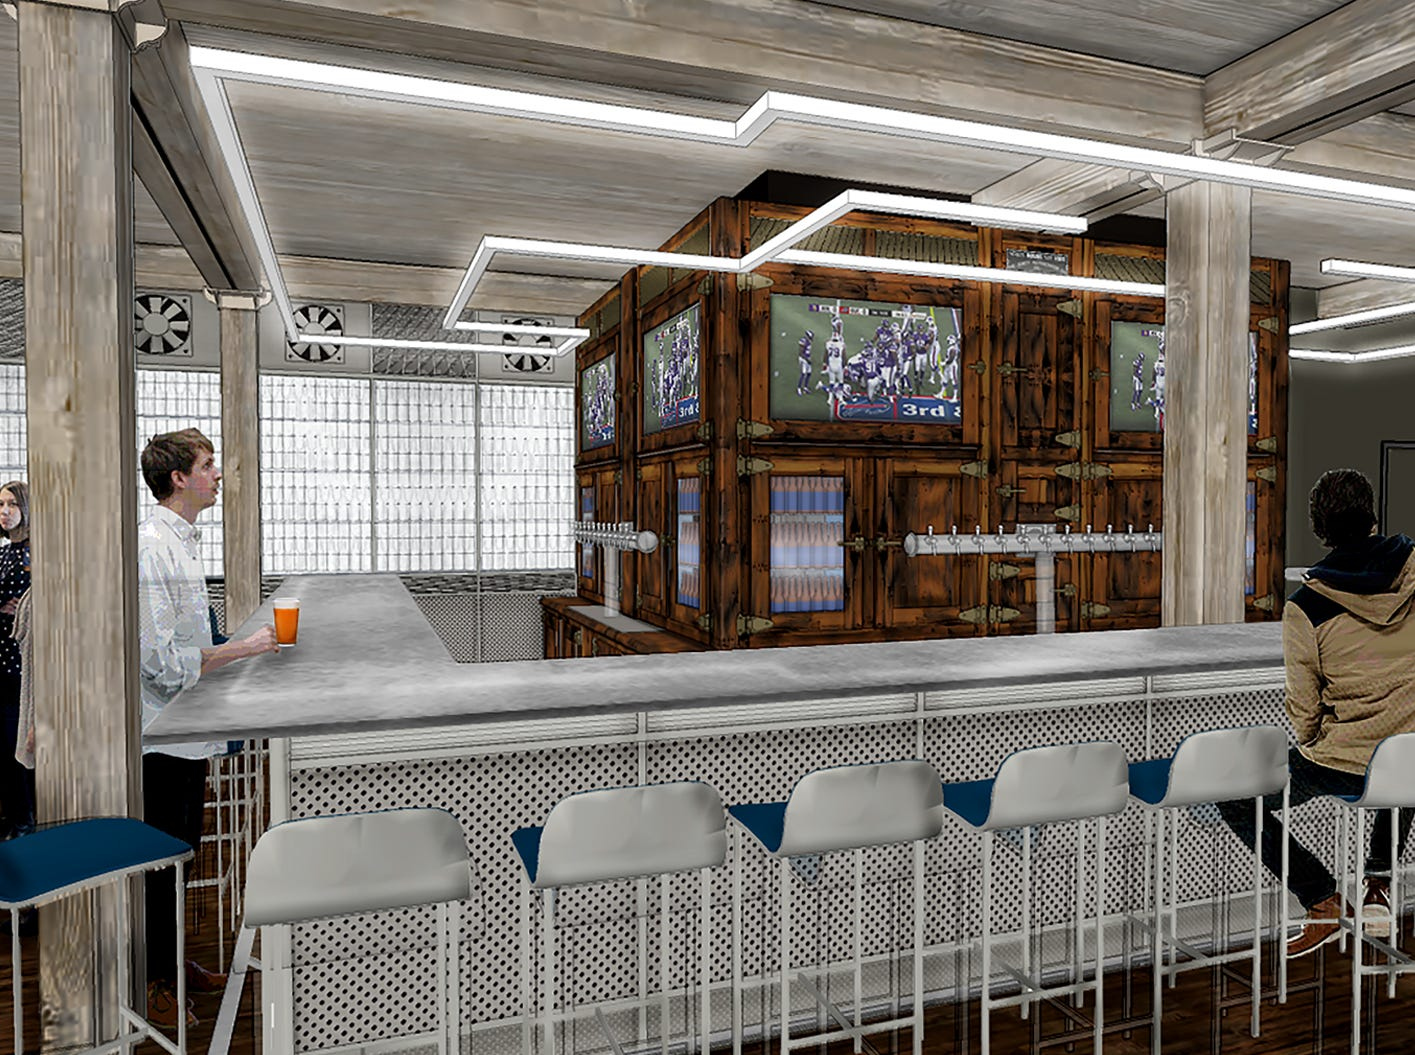 A rendering of the main bar at the Labatt Brew House in Buffalo.